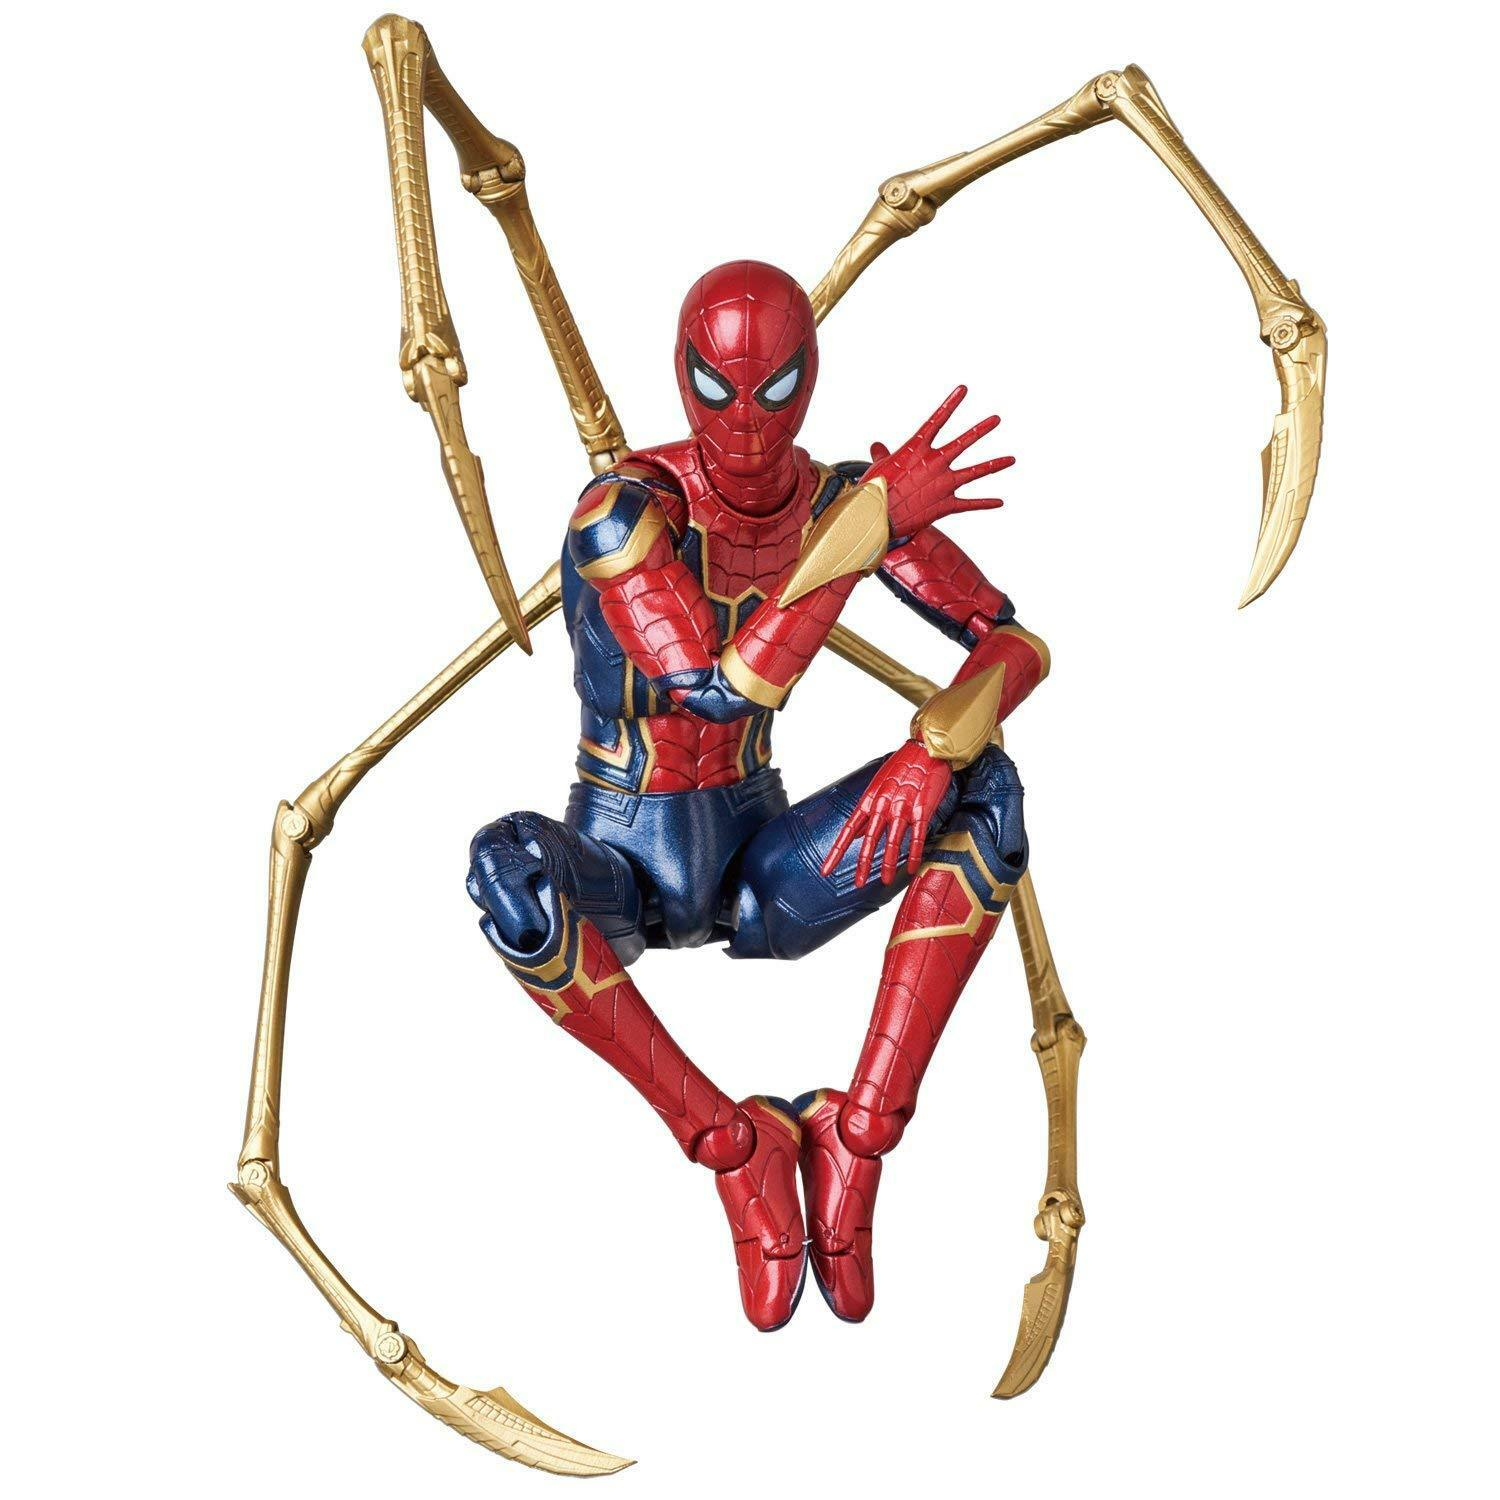 Mafex Iron Spider (Avengers / Infinity War) Japan version